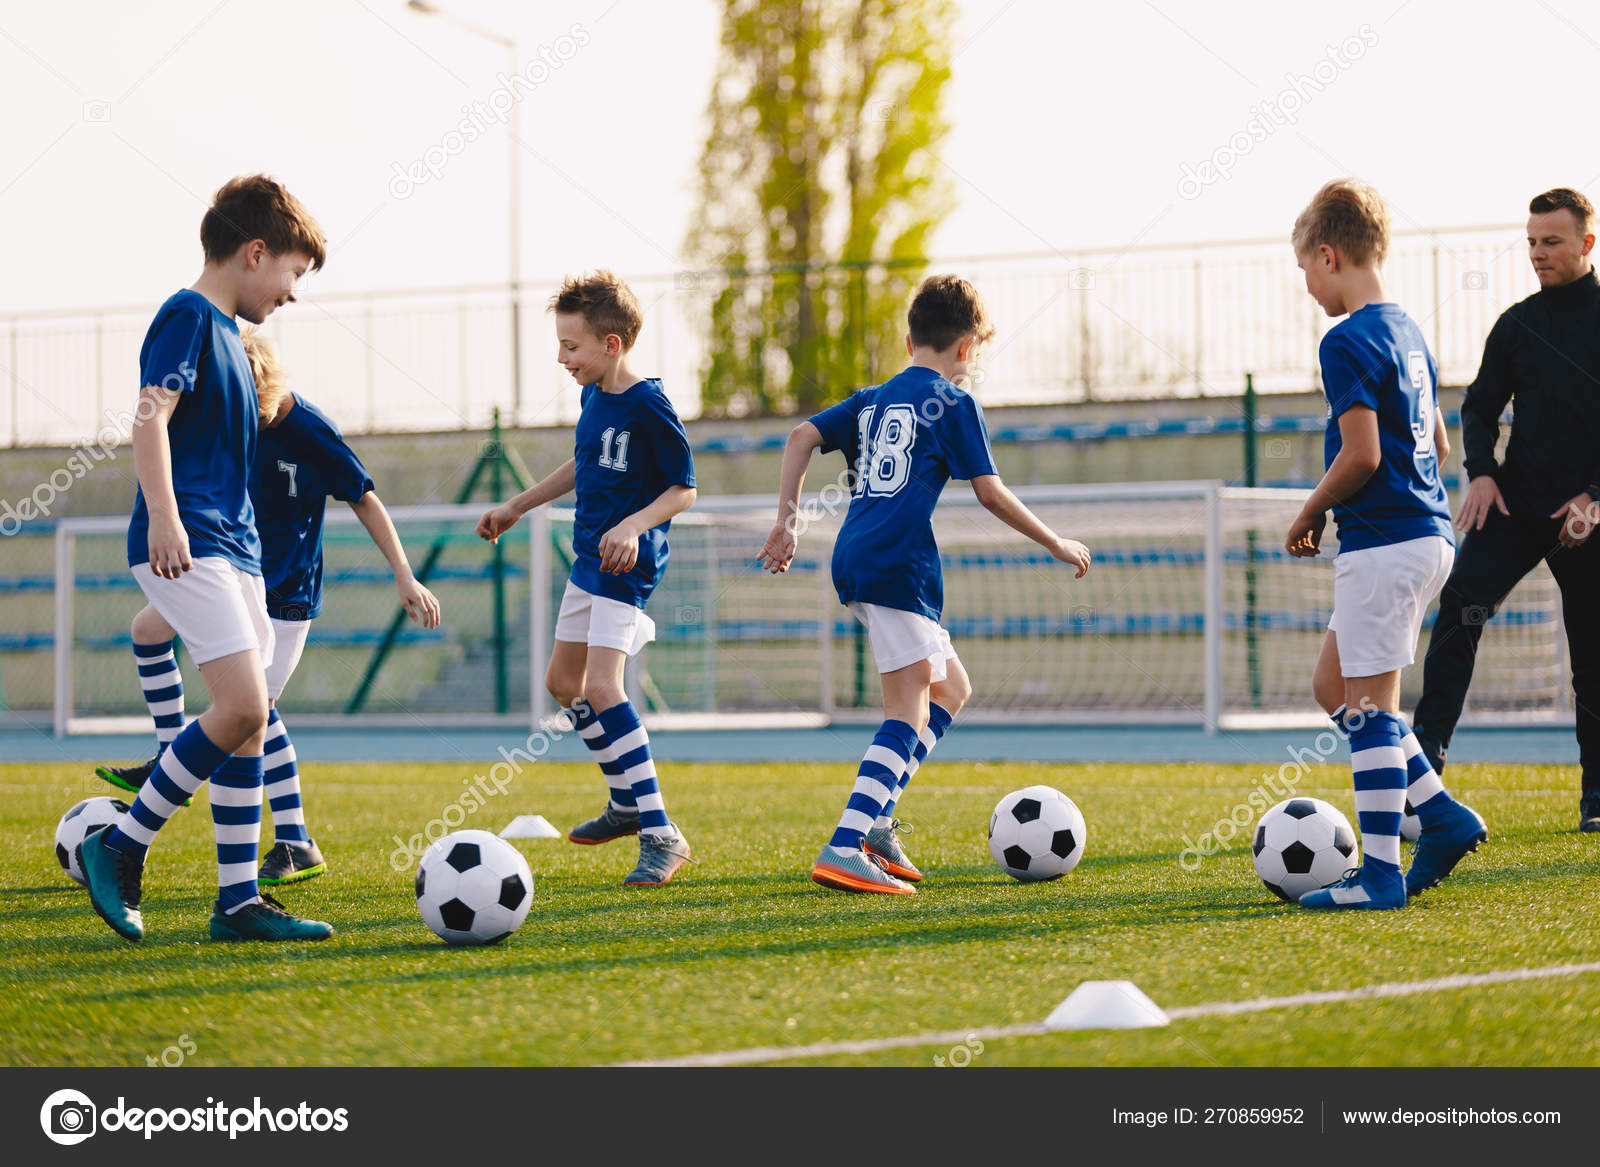 Young Boys in Sports Club on Soccer Football Training  Kids Enhance